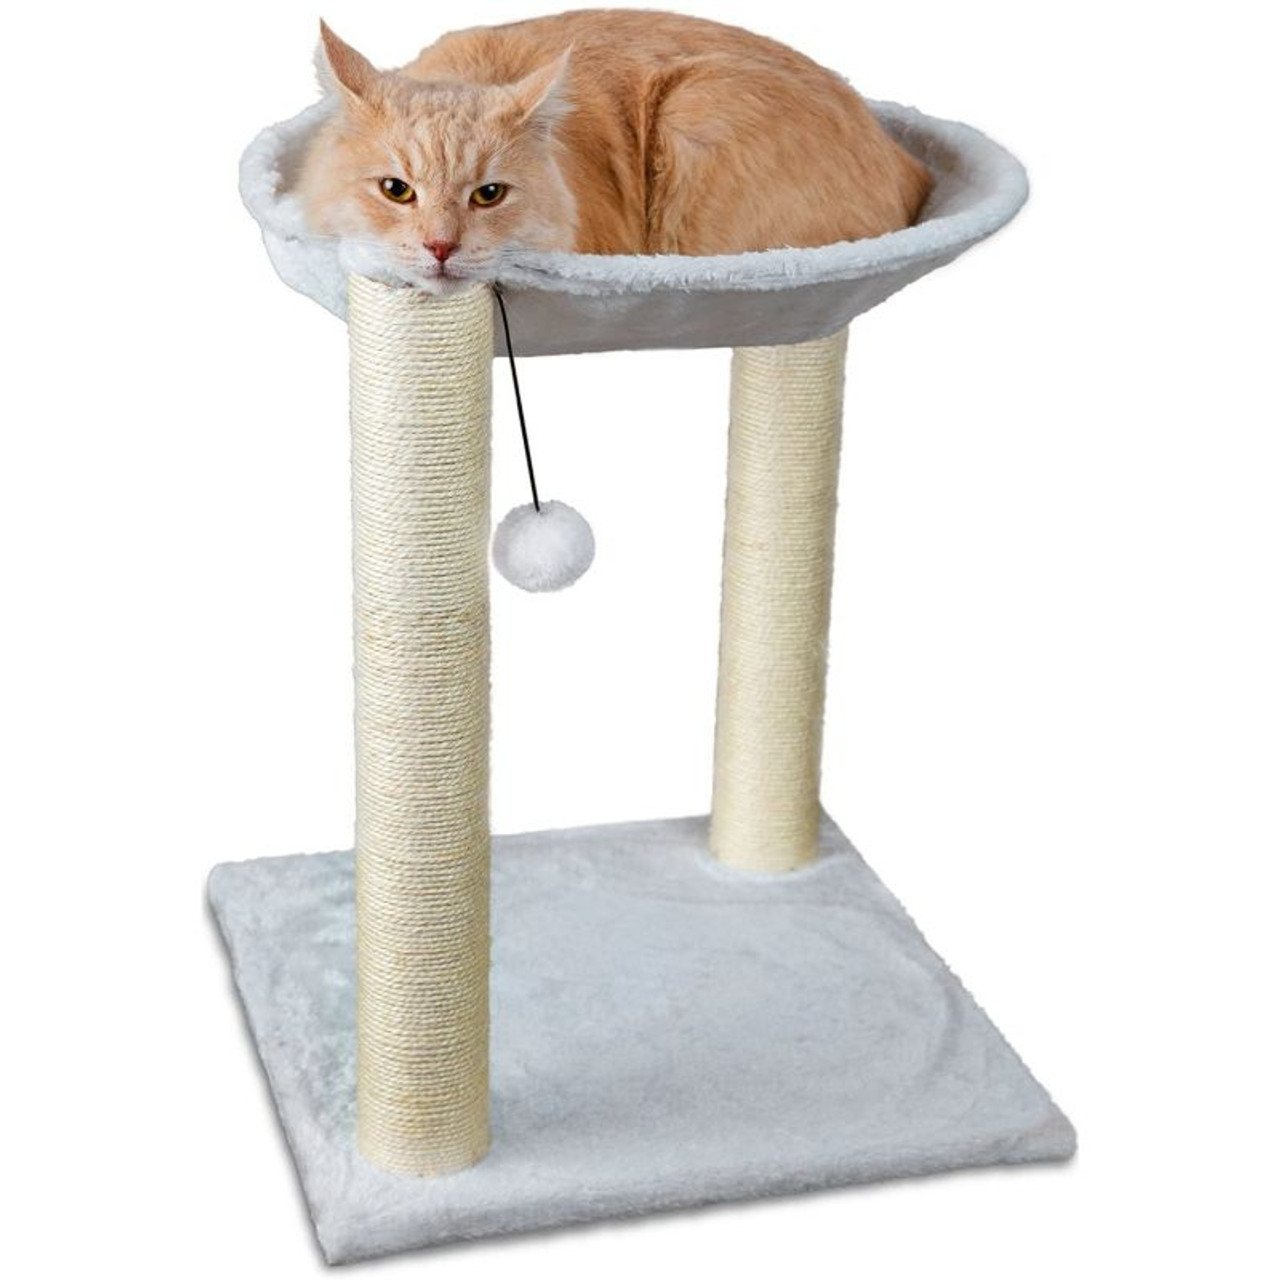 3-in-1 Cat Scratching Post With Hammock & Toy - Tall